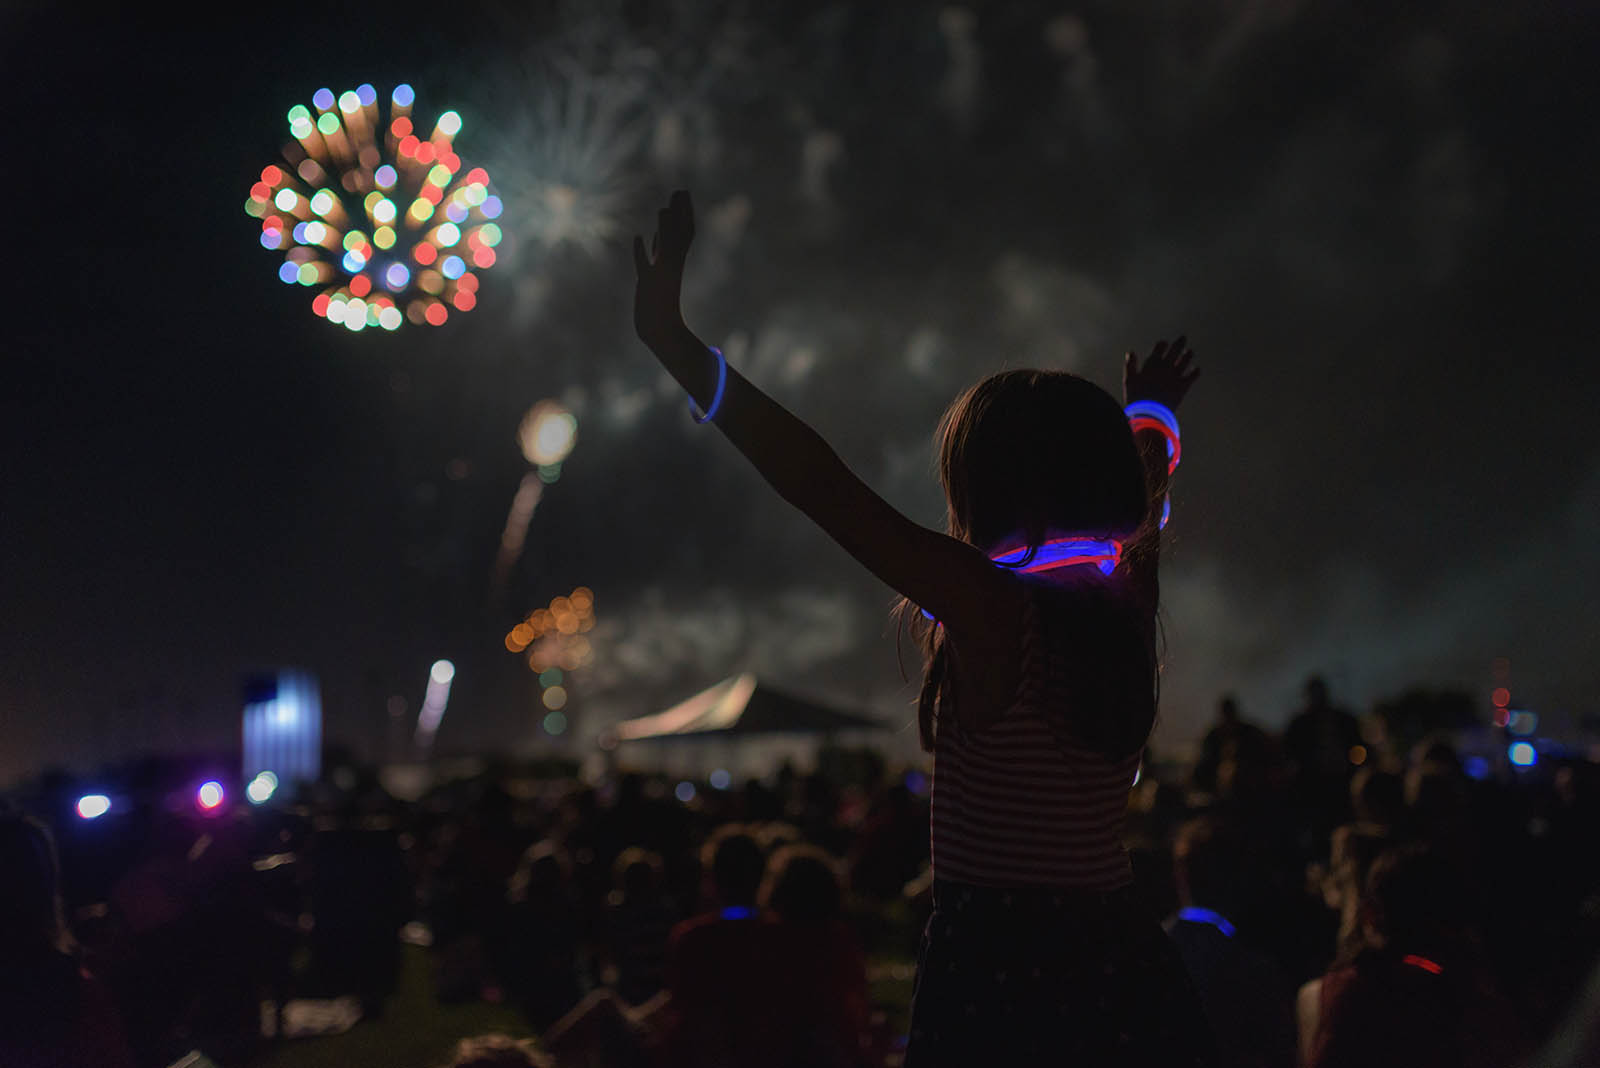 Back up when photographing fireworks